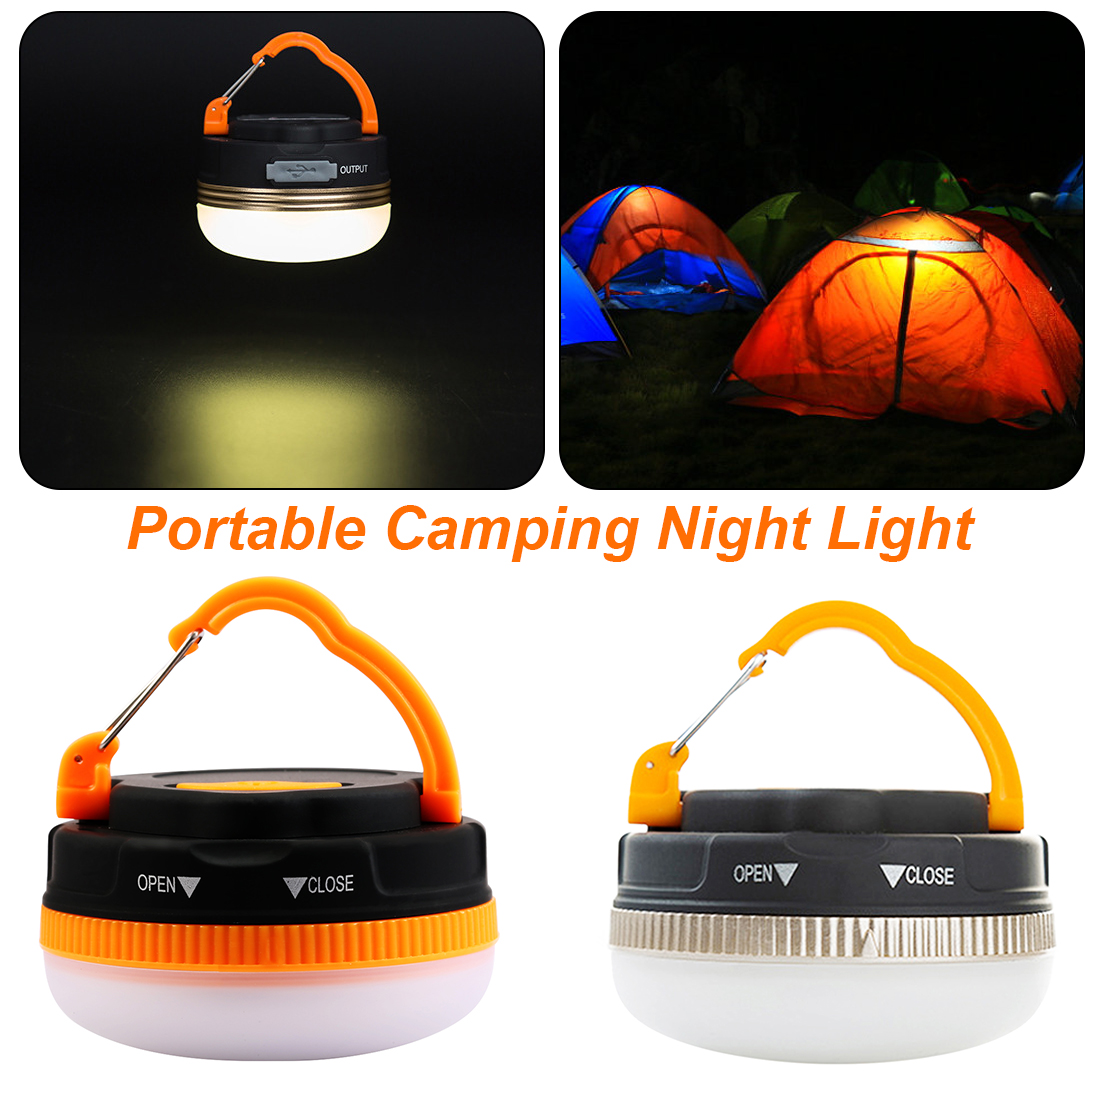 180 Lumens Portable Outdoor Camping Equipment Survival Lantern Hiking Tent LED Light Campsite Hanging Lamp Emergency With Handle